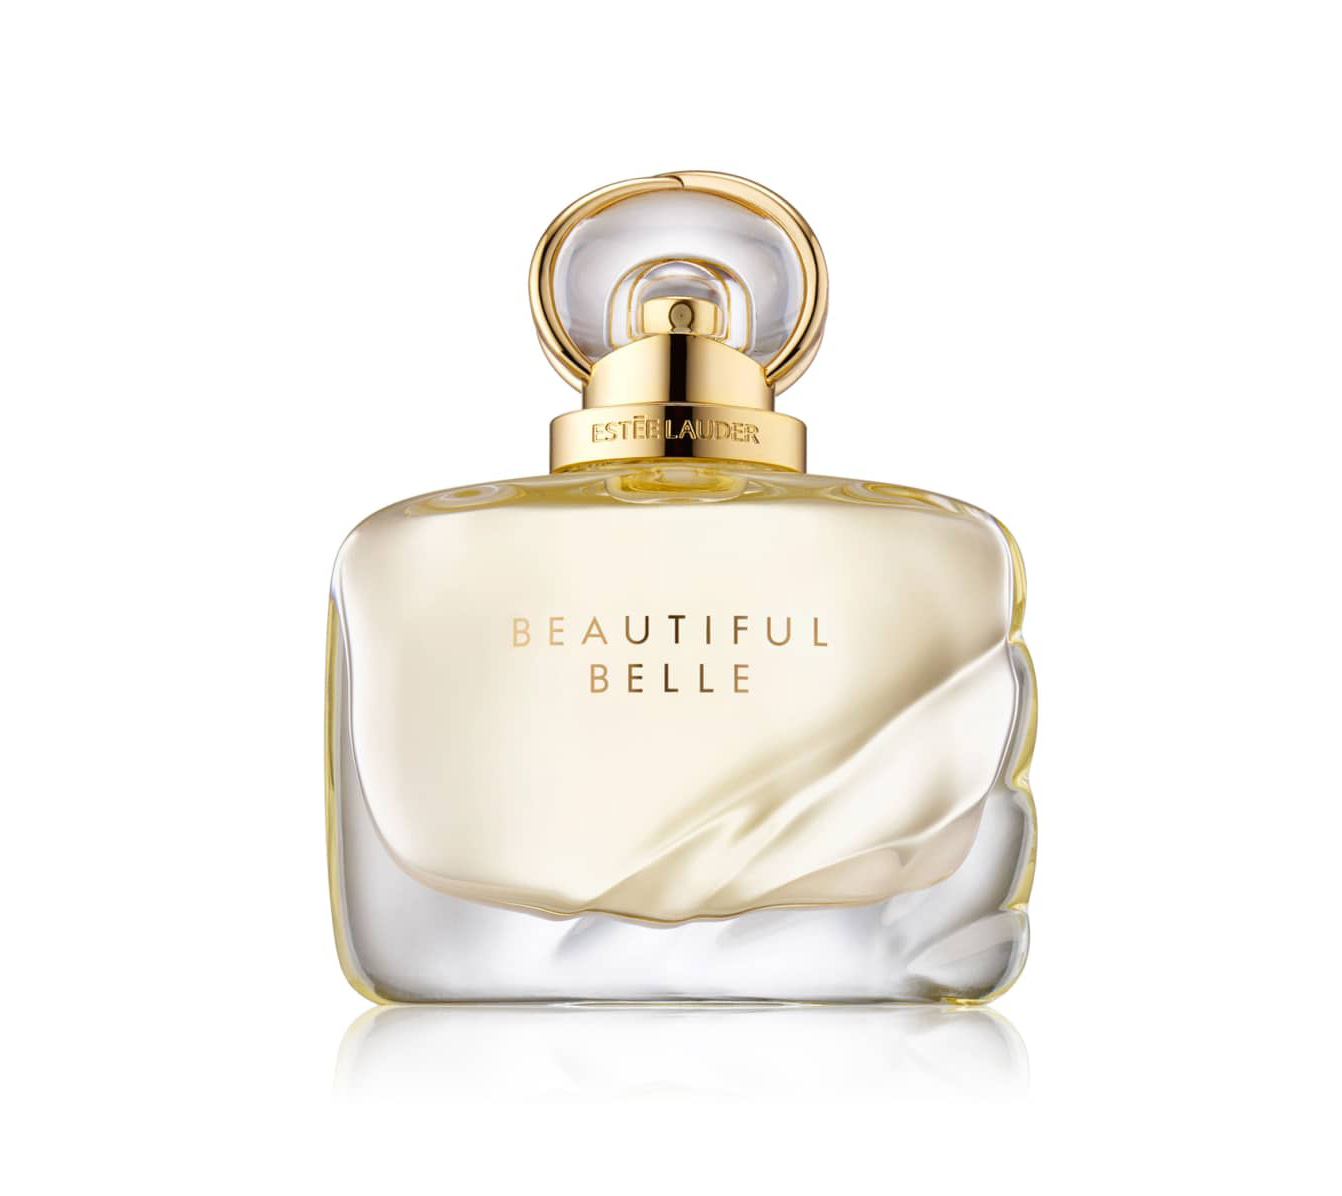 holiday gift guide fragrance- EsteeLauder - It's all about the la dolce vita with this sparkling mimosa, orange flower and orris root scent. $90 for 1.7 oz, ulta.com